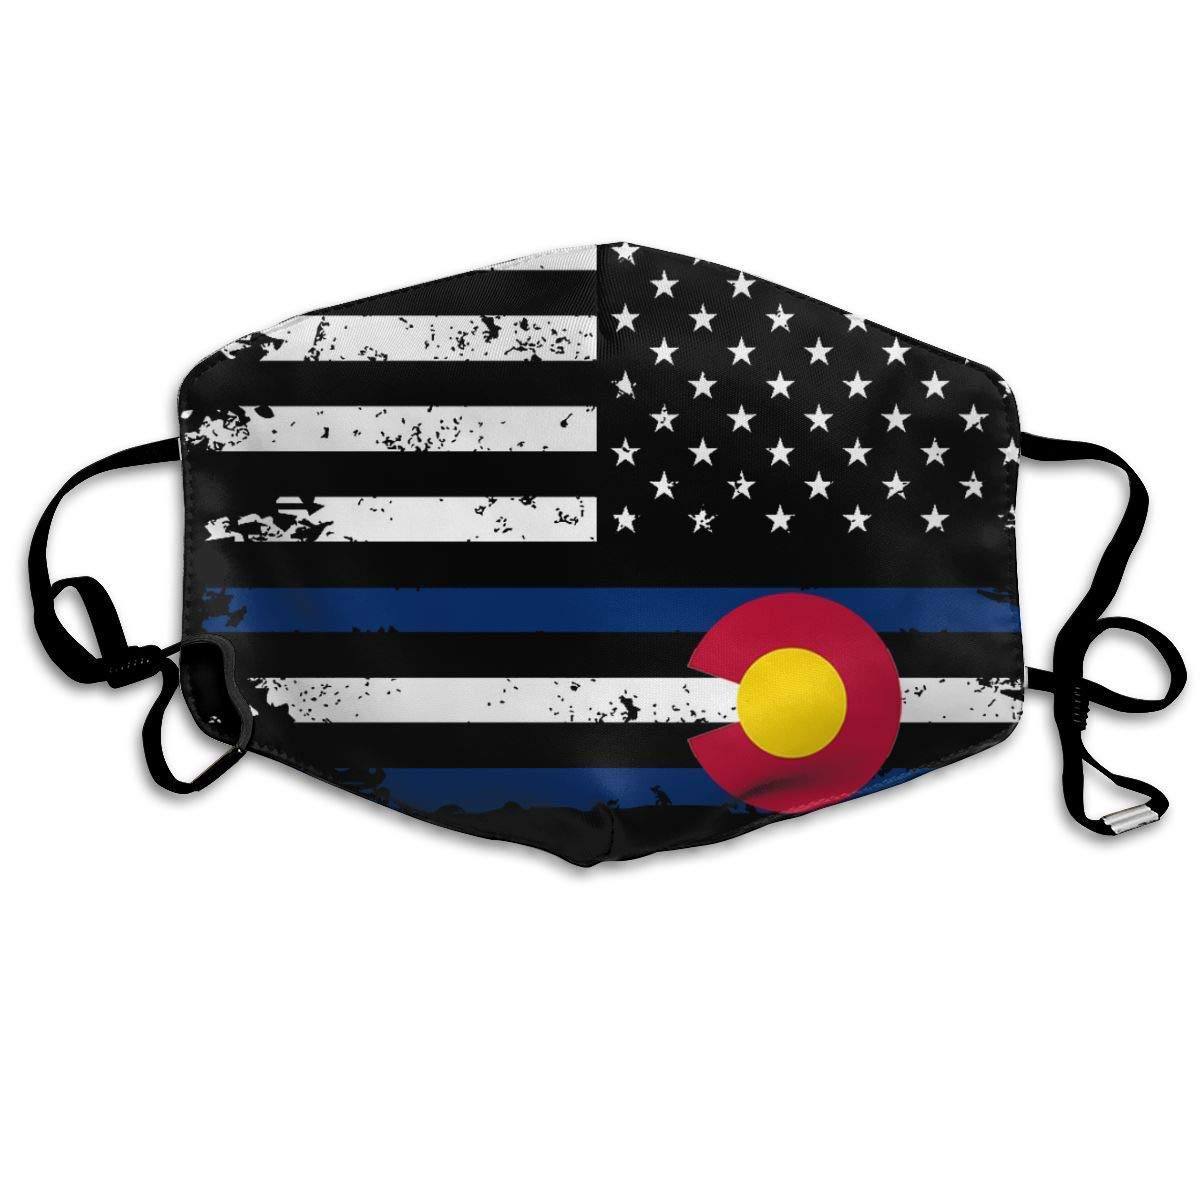 Daawqee Mascarillas, American Colorado Flag Anti-dust Mouth Mask Face Masks Mouth Cover for Man and Woman